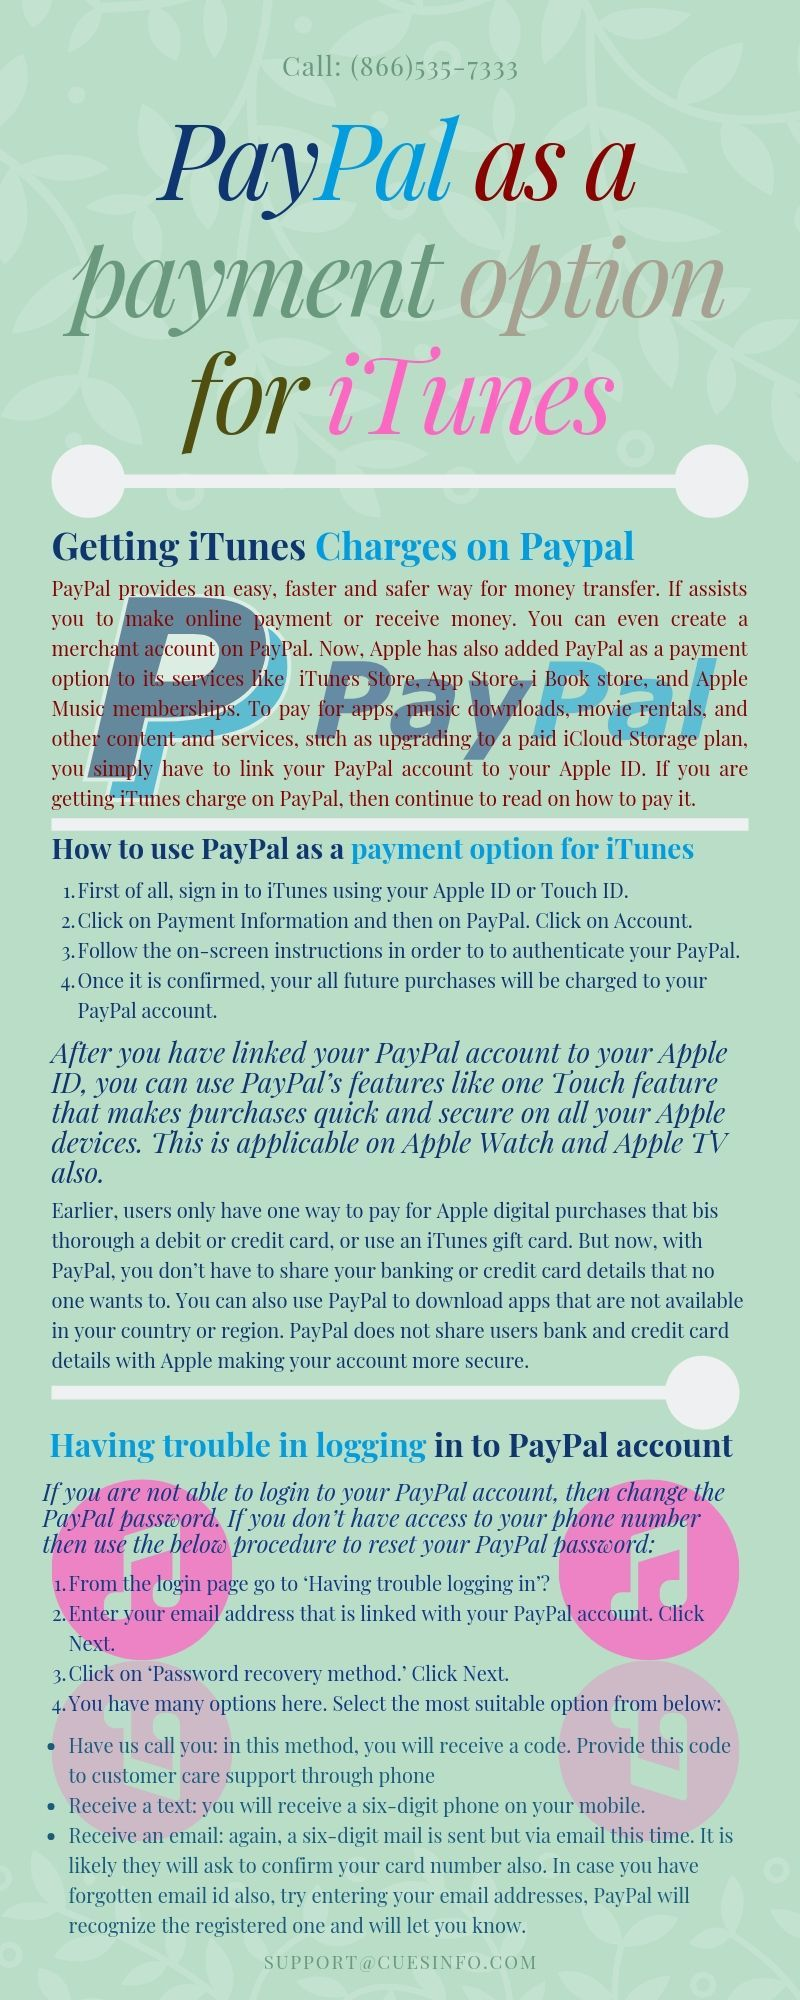 How to use PayPal as a payment option for iTunes